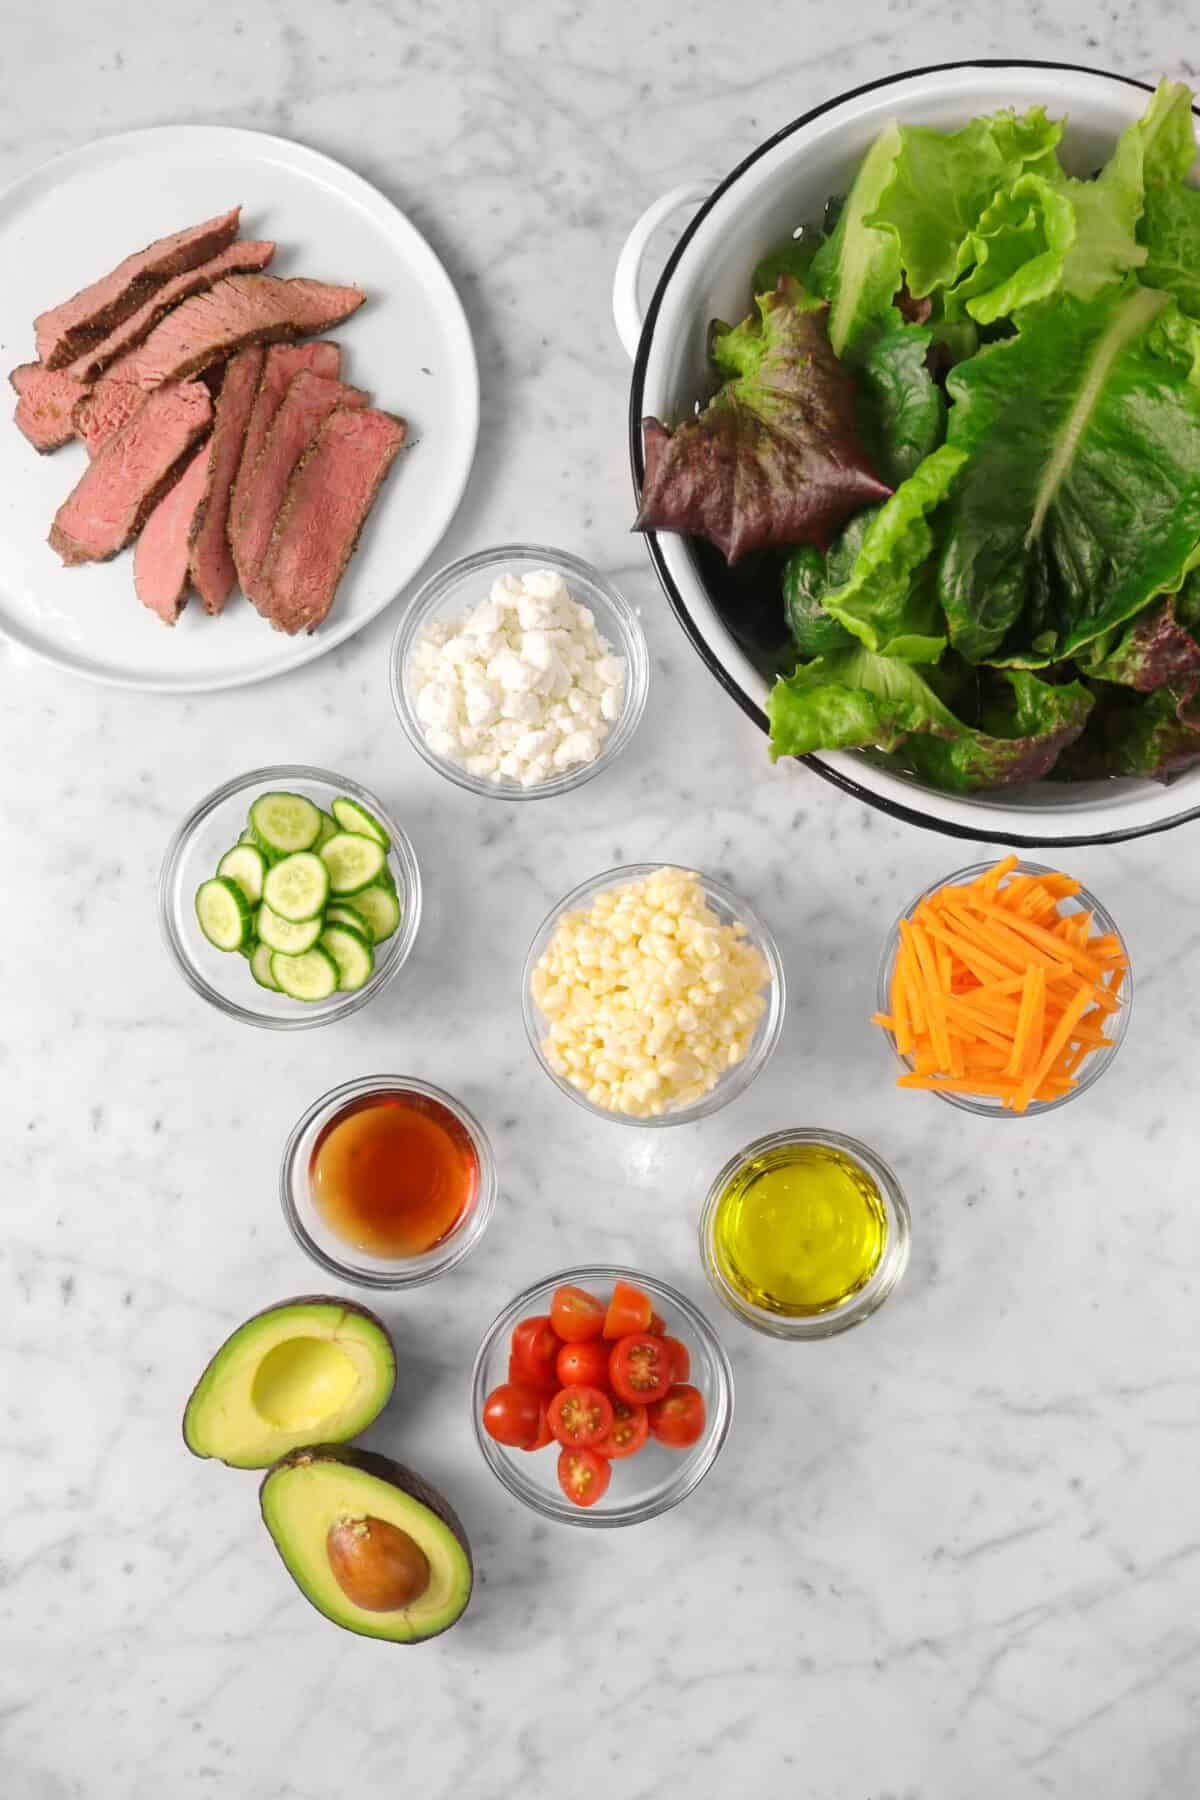 lettuce, julienned carrots, olive oil, sliced tomatoes, avocado, red wine vinegar, corn, sliced cucumbers, goat cheese, and steak on a marble counter